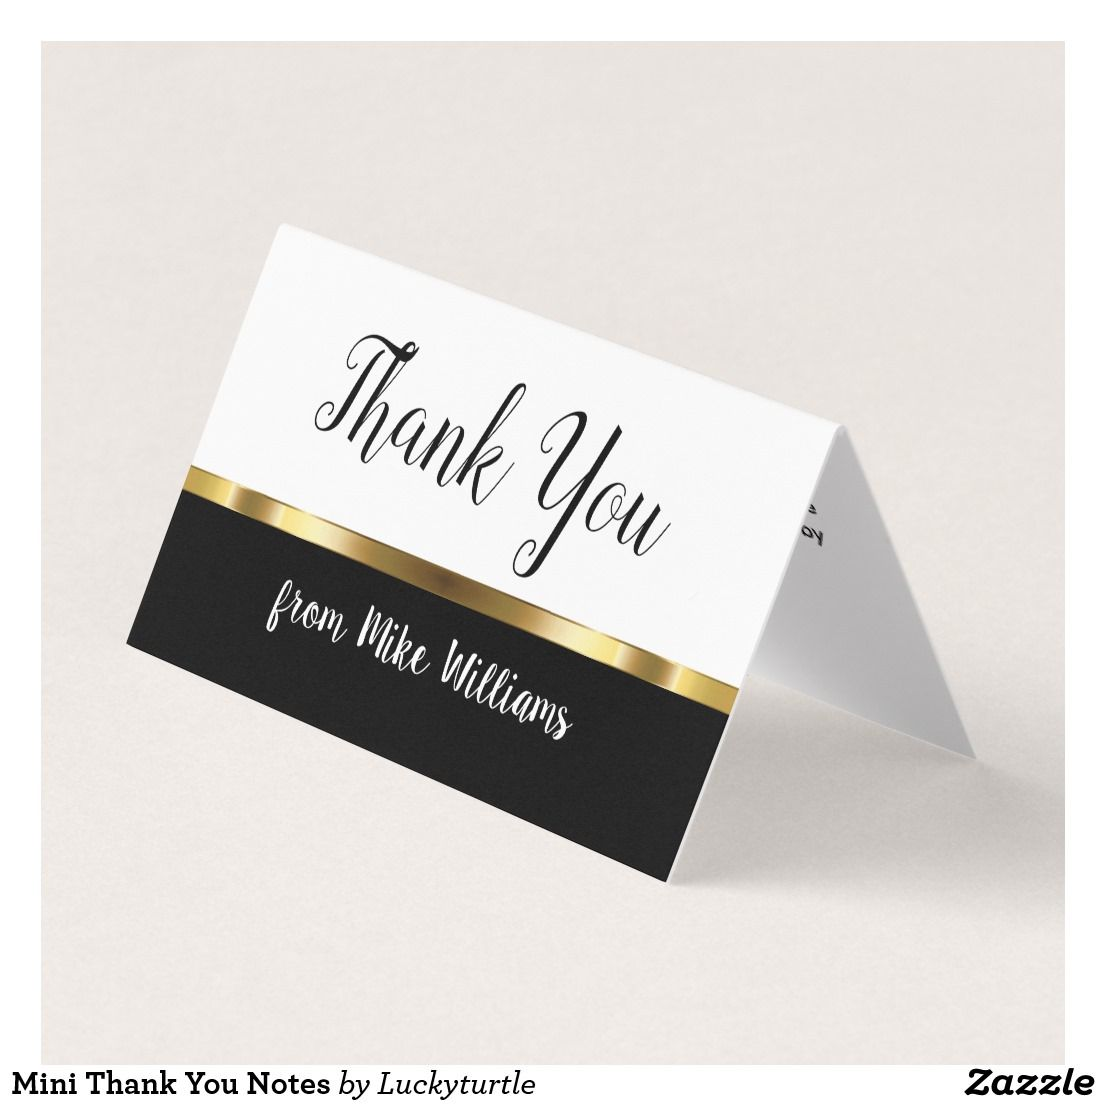 Mini Thank You Notes Thank You Cards Thank You Cards Thank You